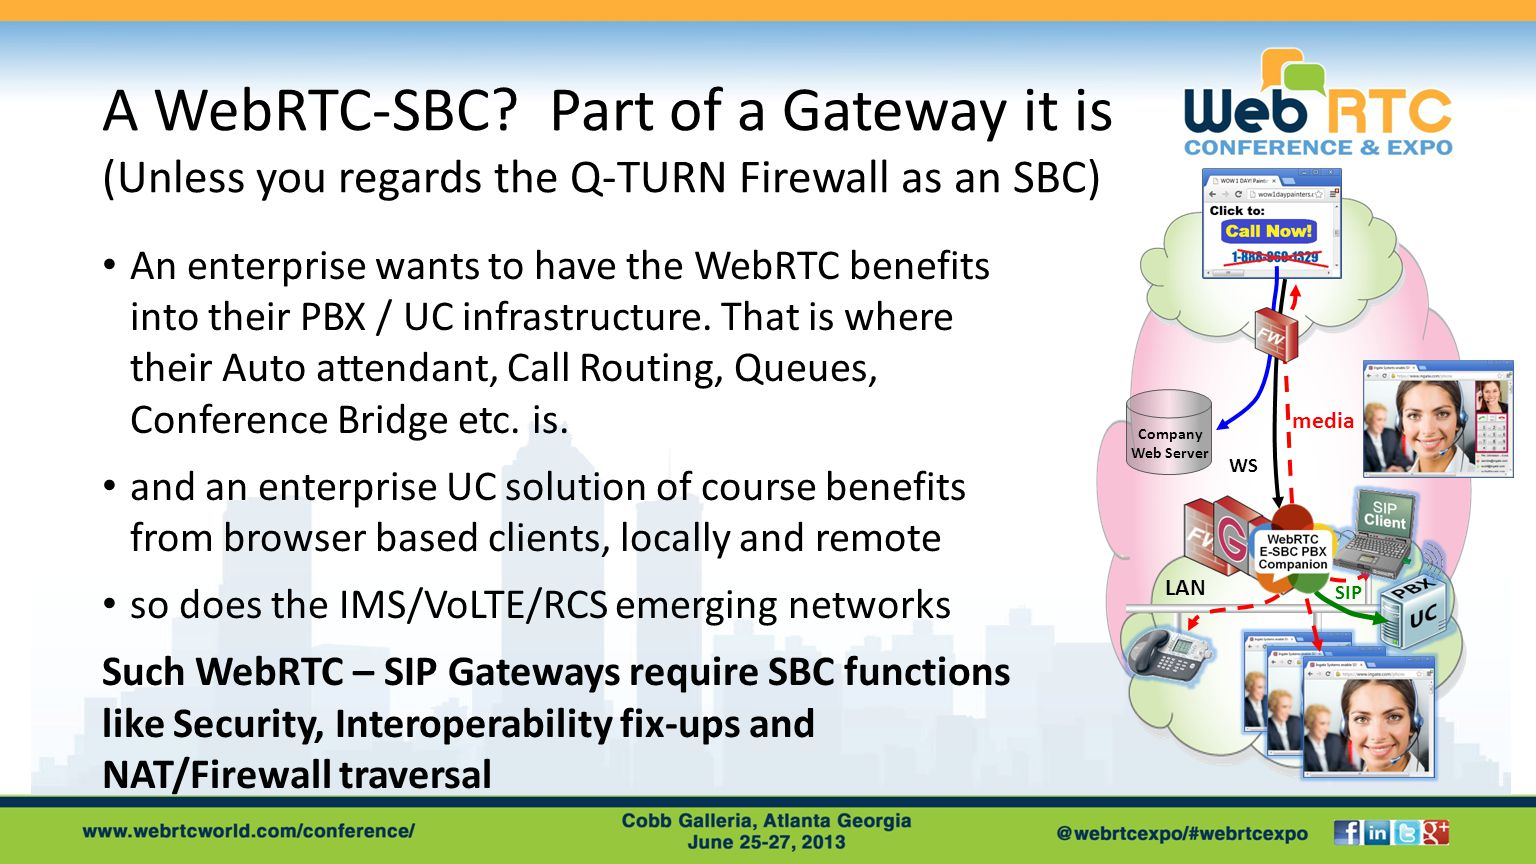 A WebRTC-SBC? Part of a Gateway it is (Unless you regards the Q-TURN Firewall as an SBC) An enterprise wants to have the WebRTC benefits into their PB